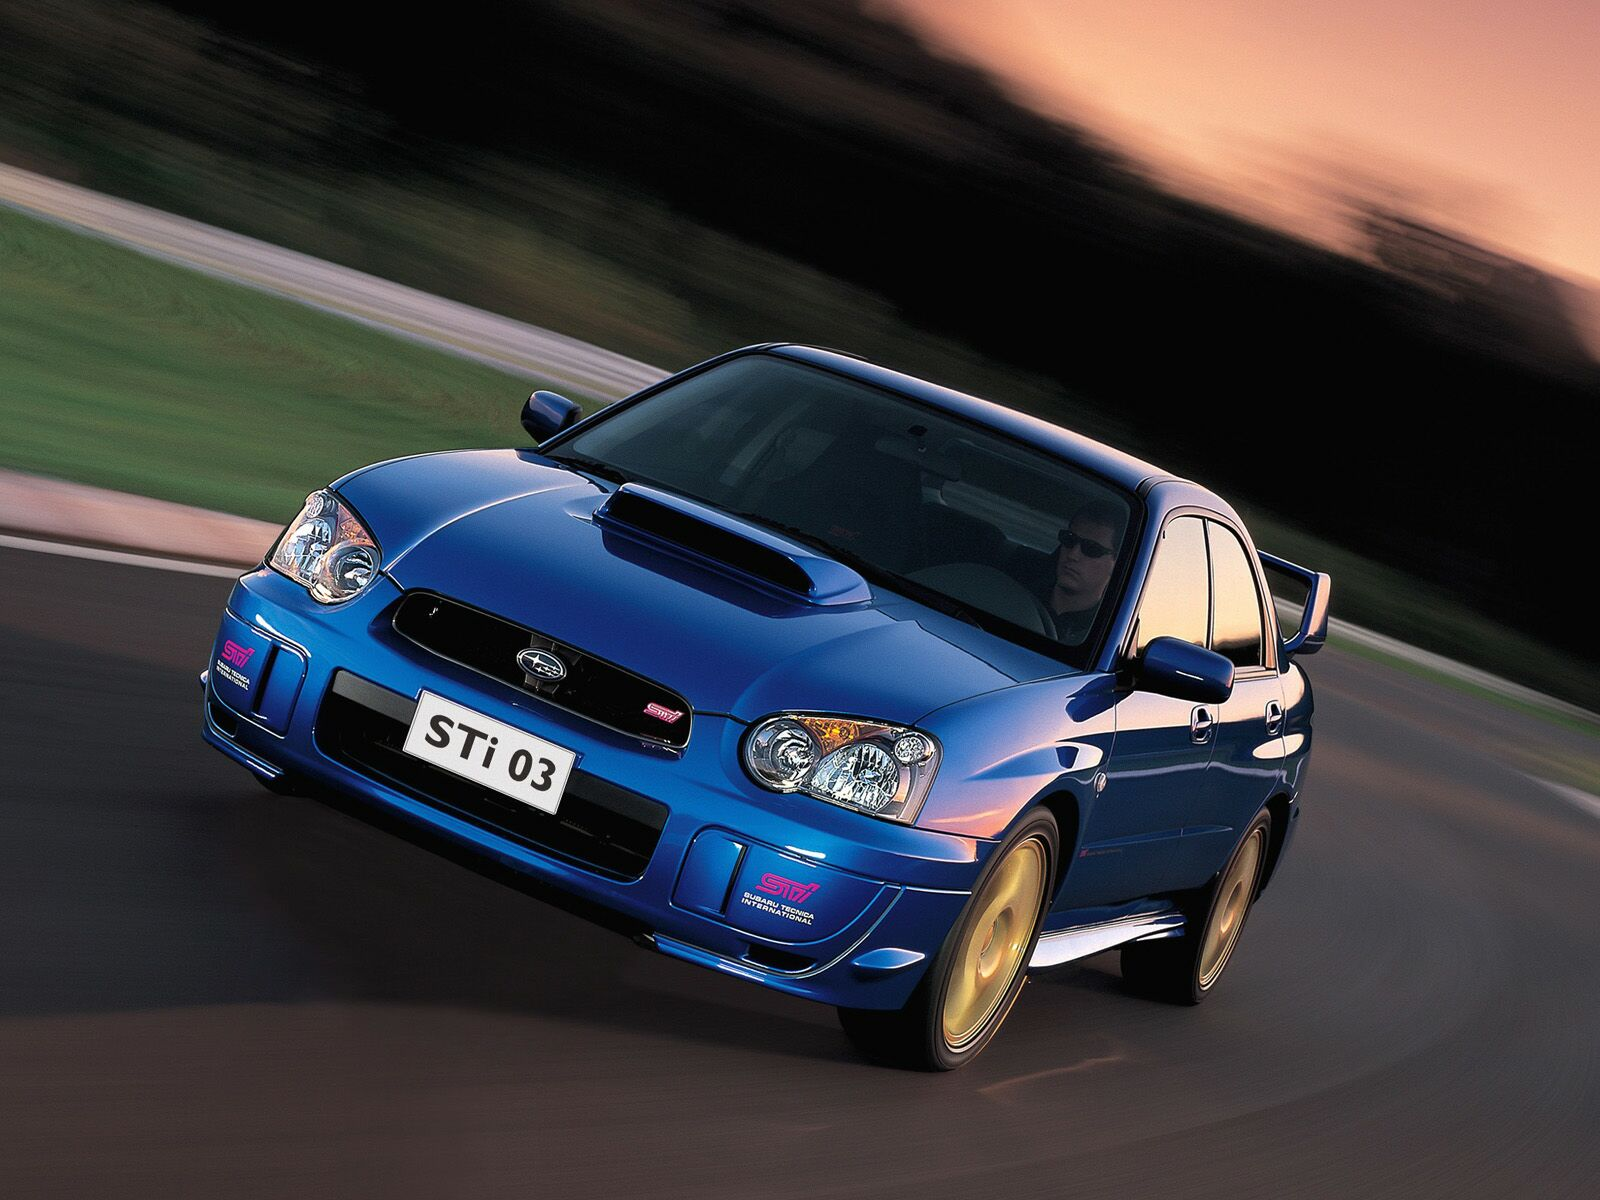 subaru impreza wrx sti exhaust sound mp3 download